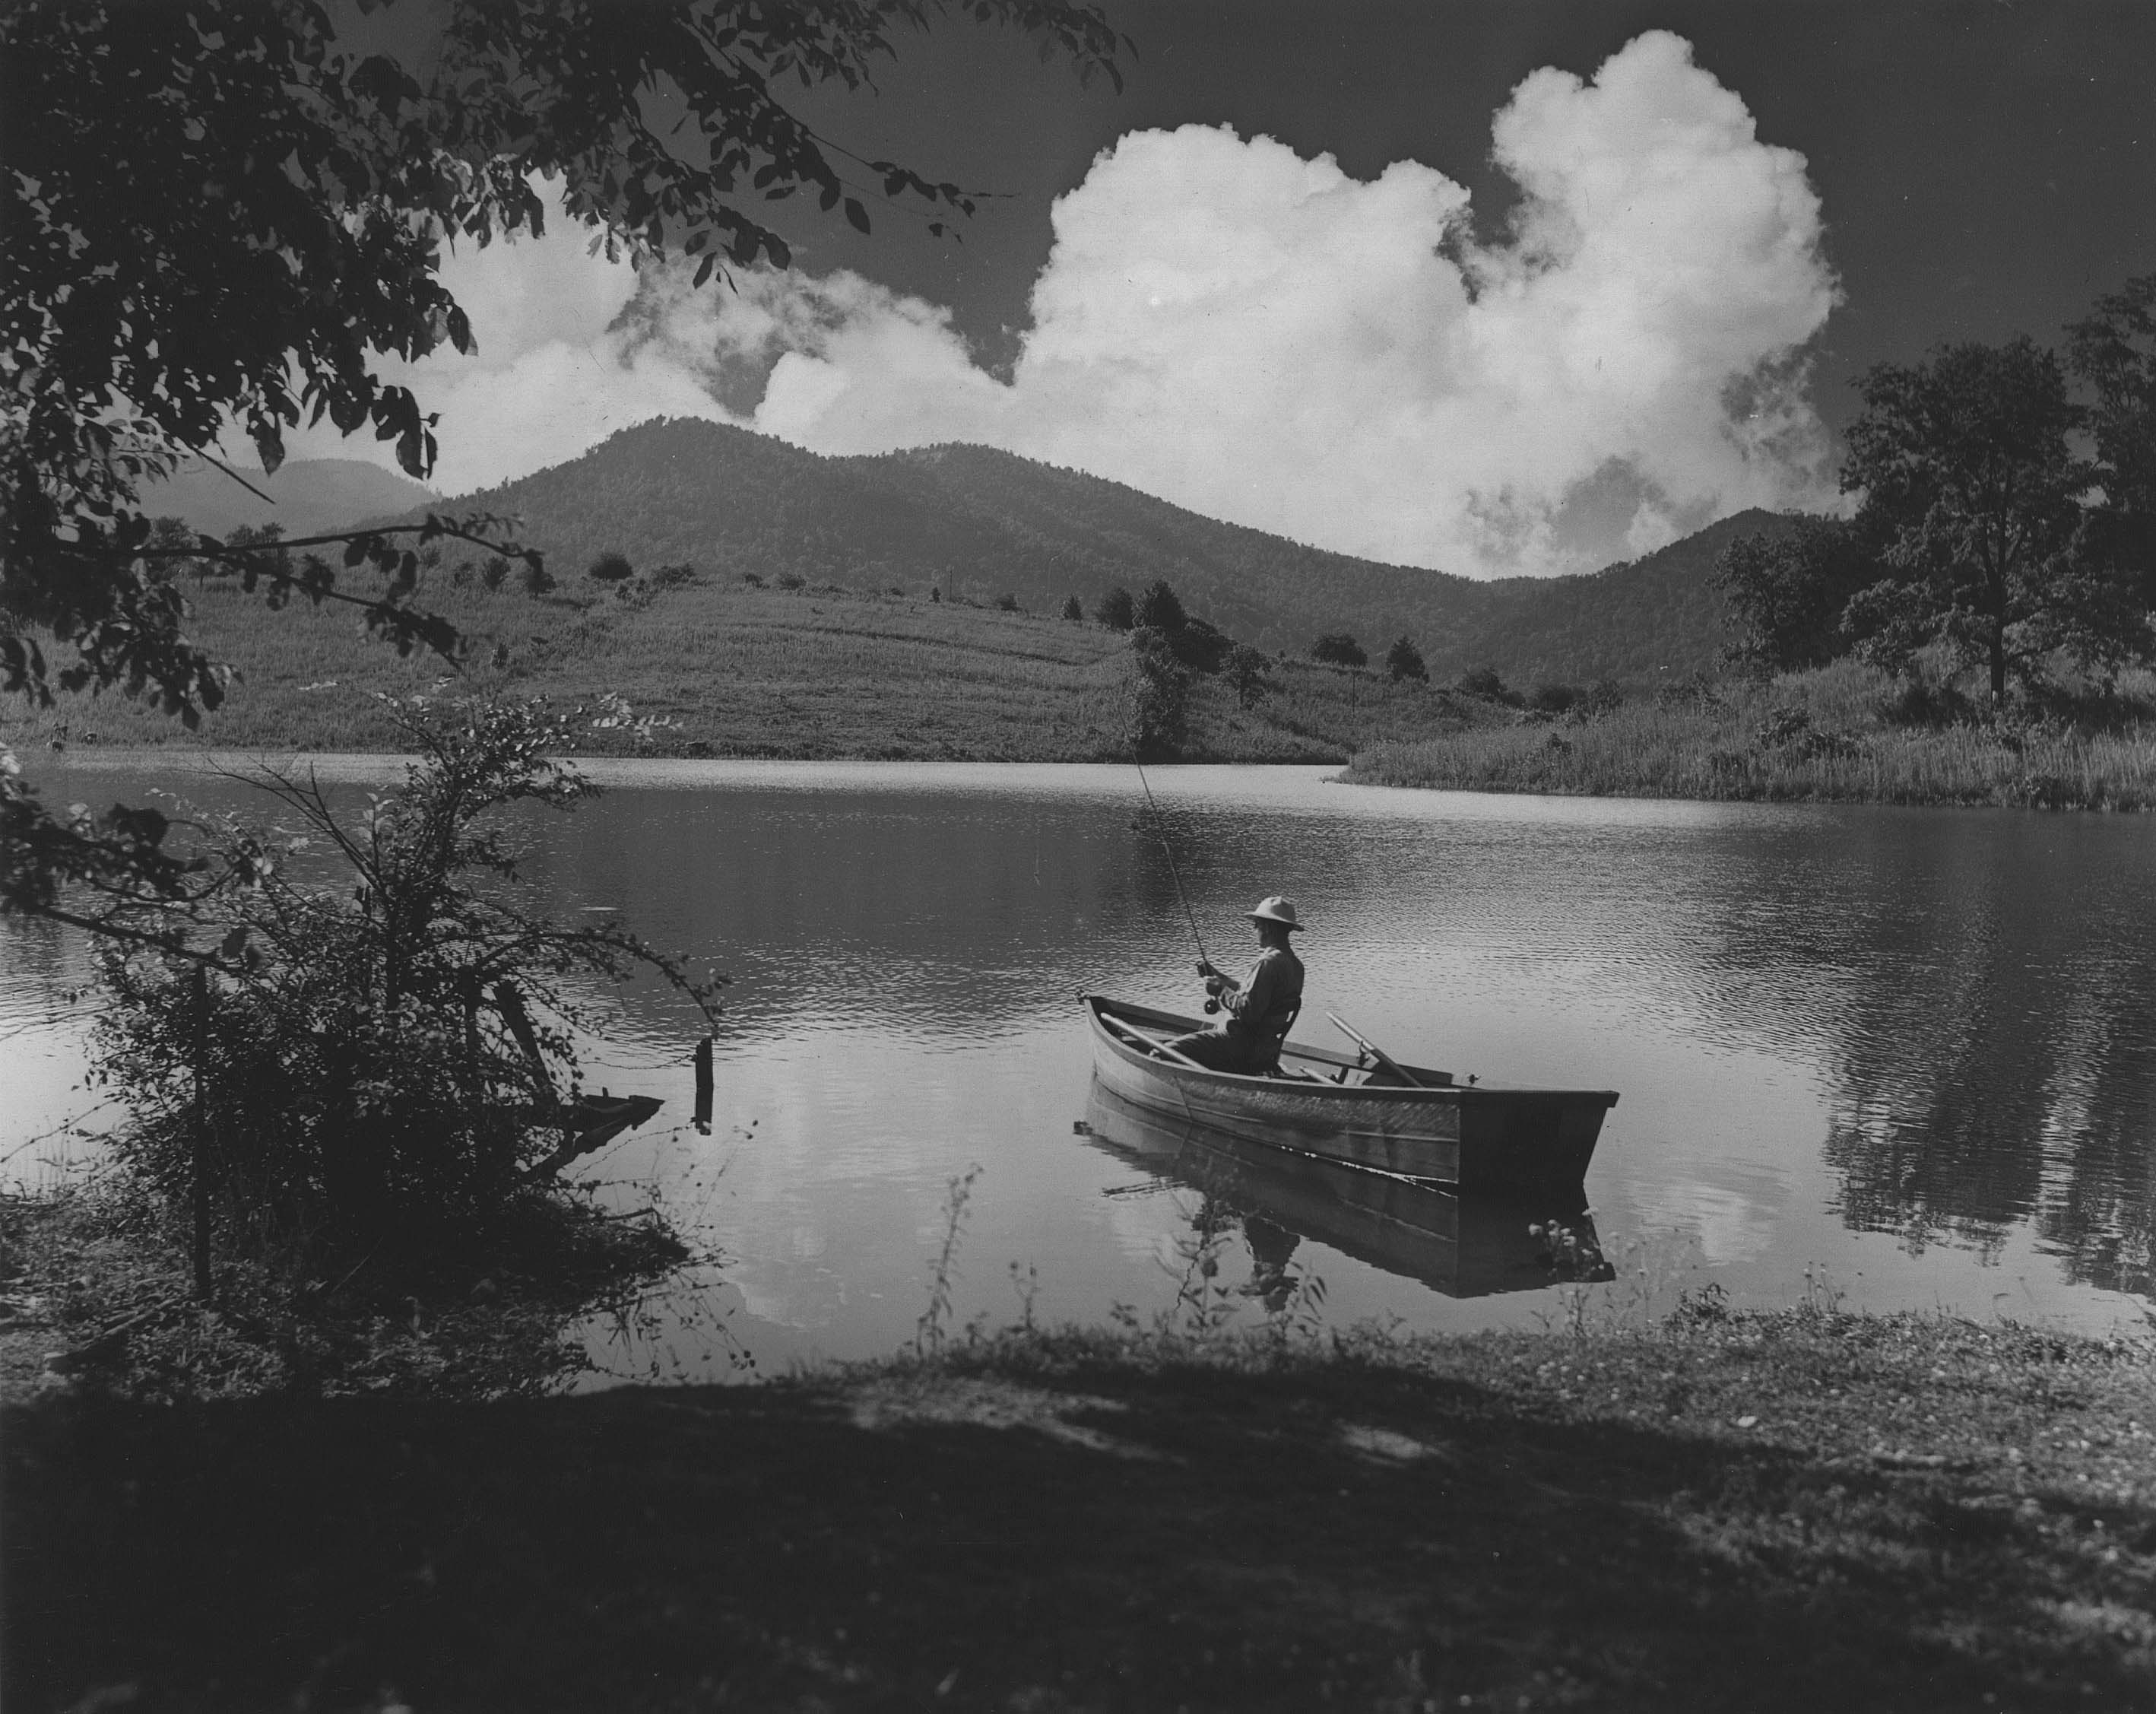 A man fishing from his boat at Cove Lake State Park near Caryville. (1938)